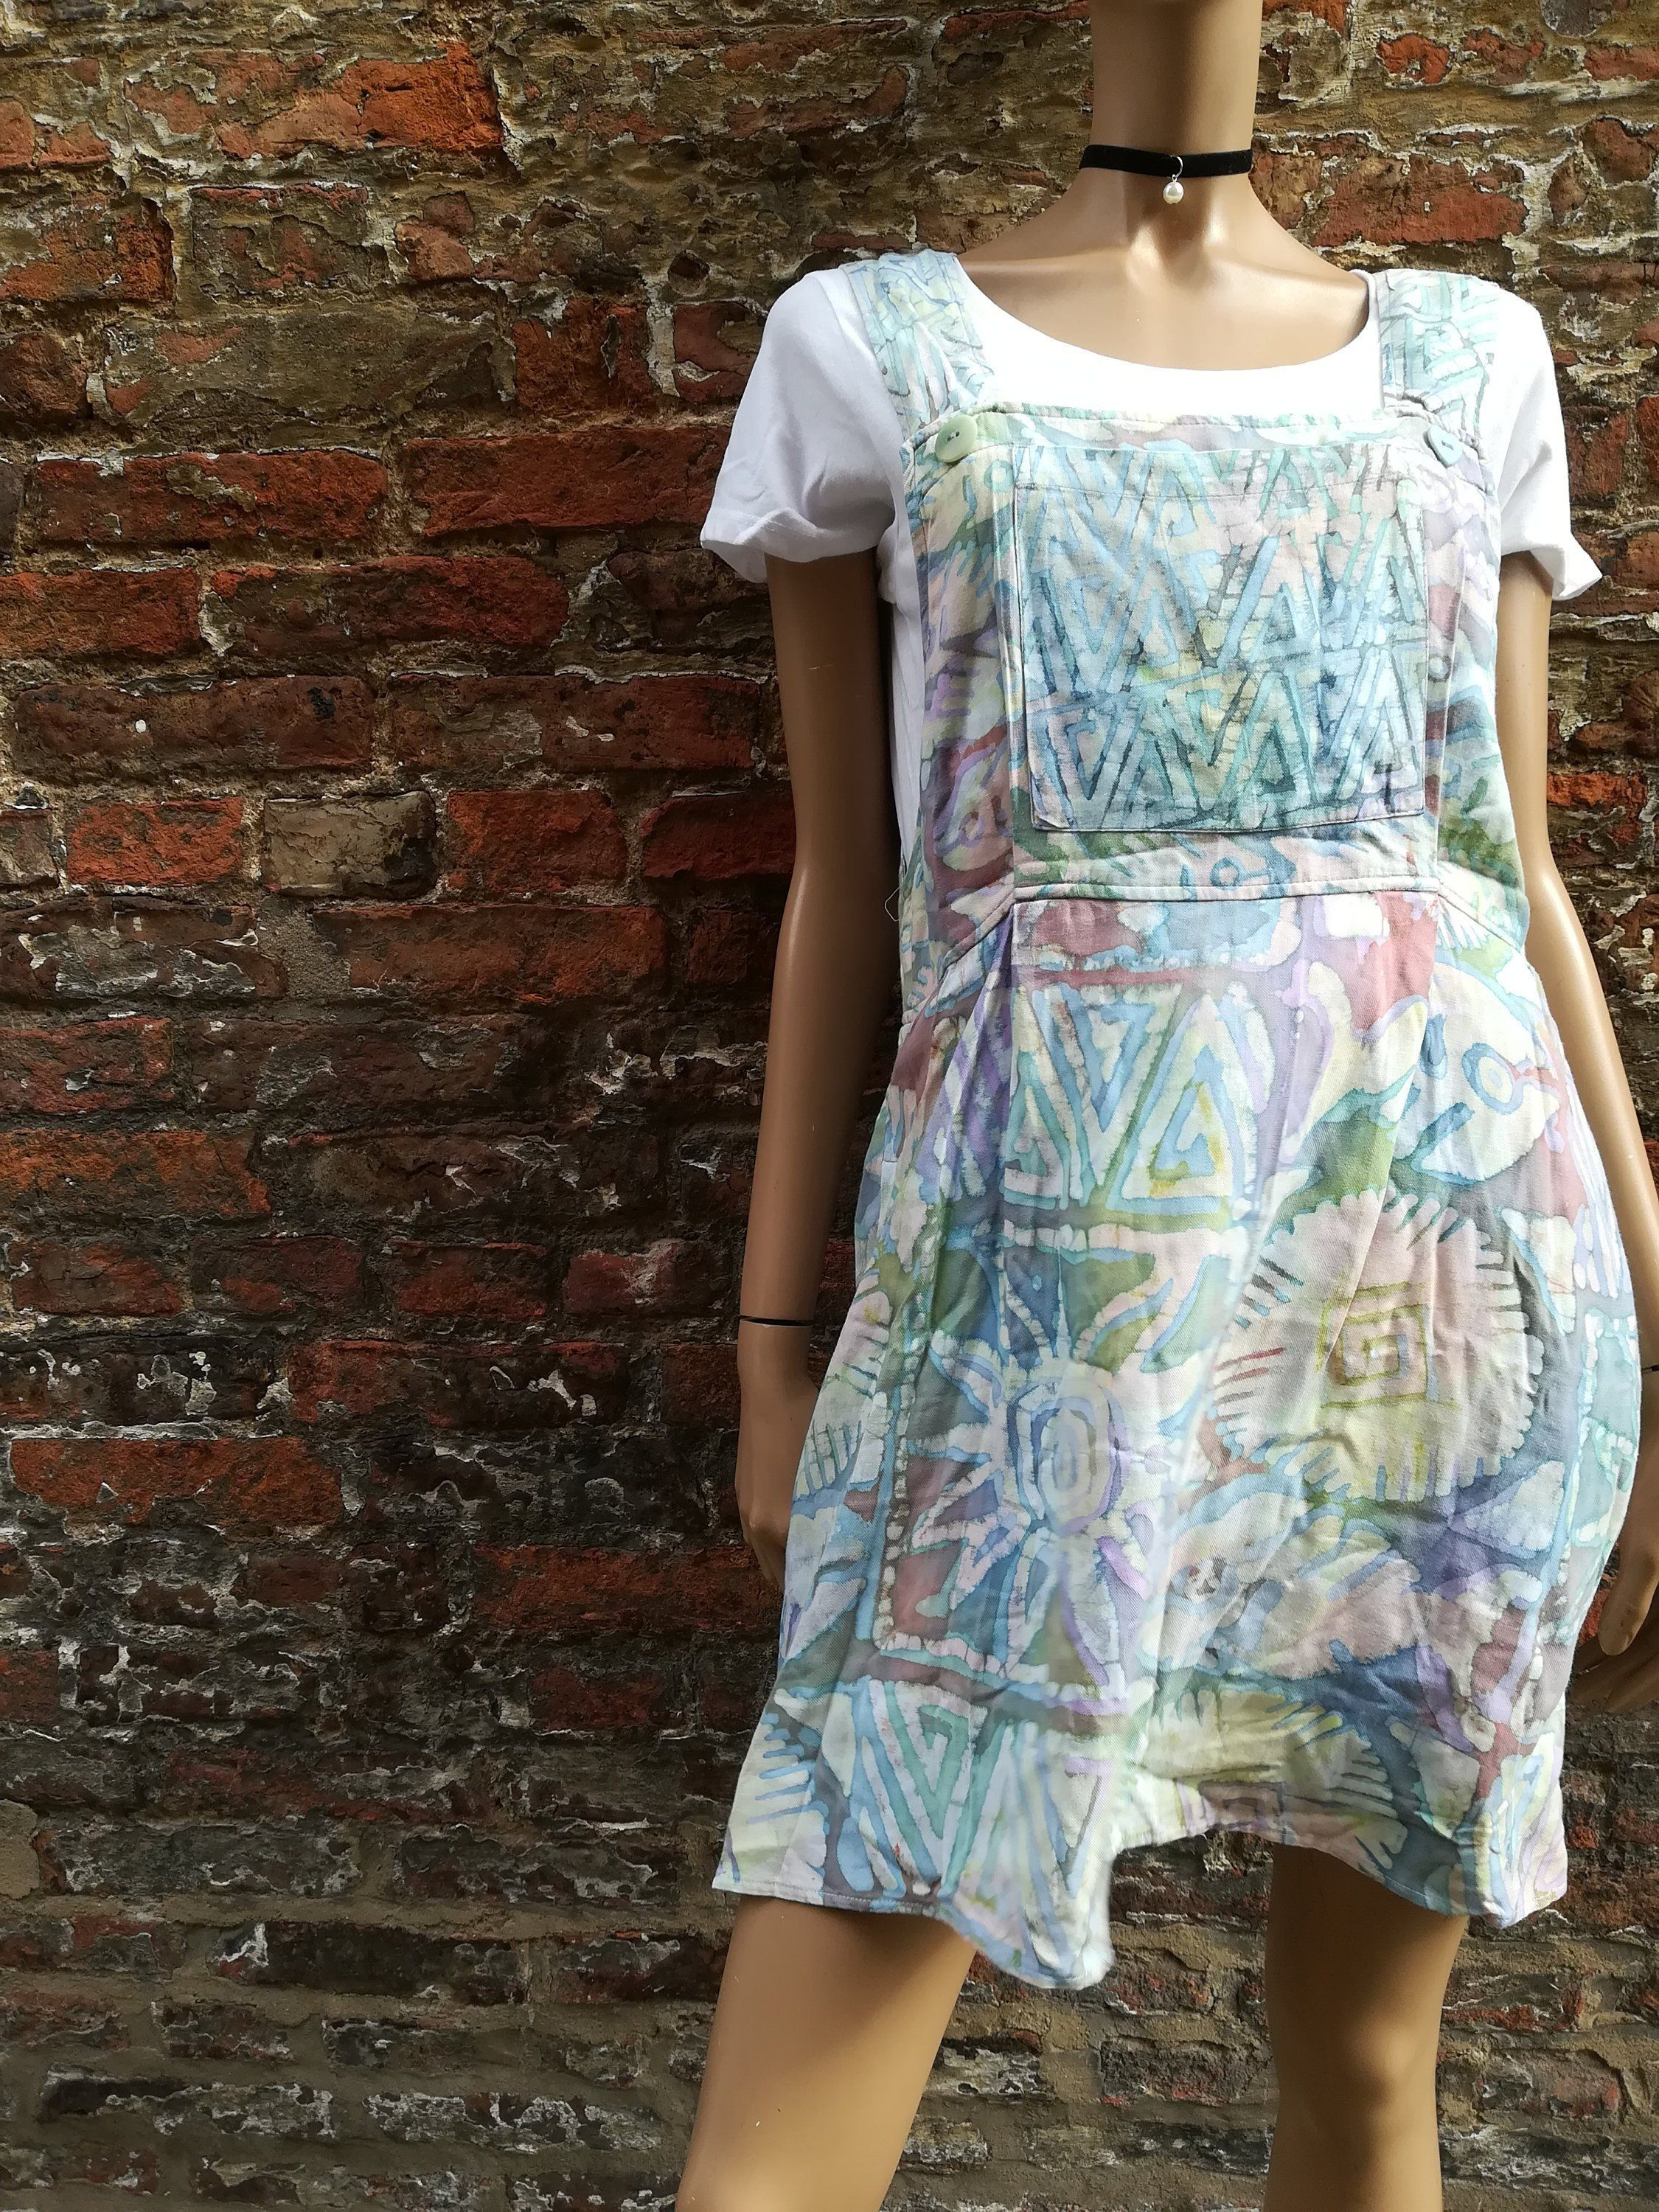 Vintage 90s Winter Sun Boho Hippie Print Grunge Pinafore Dress With Pockets Uk 12 14 This Is The Perfect Indie Dresses Hippie Dresses Boho Festival Fashion